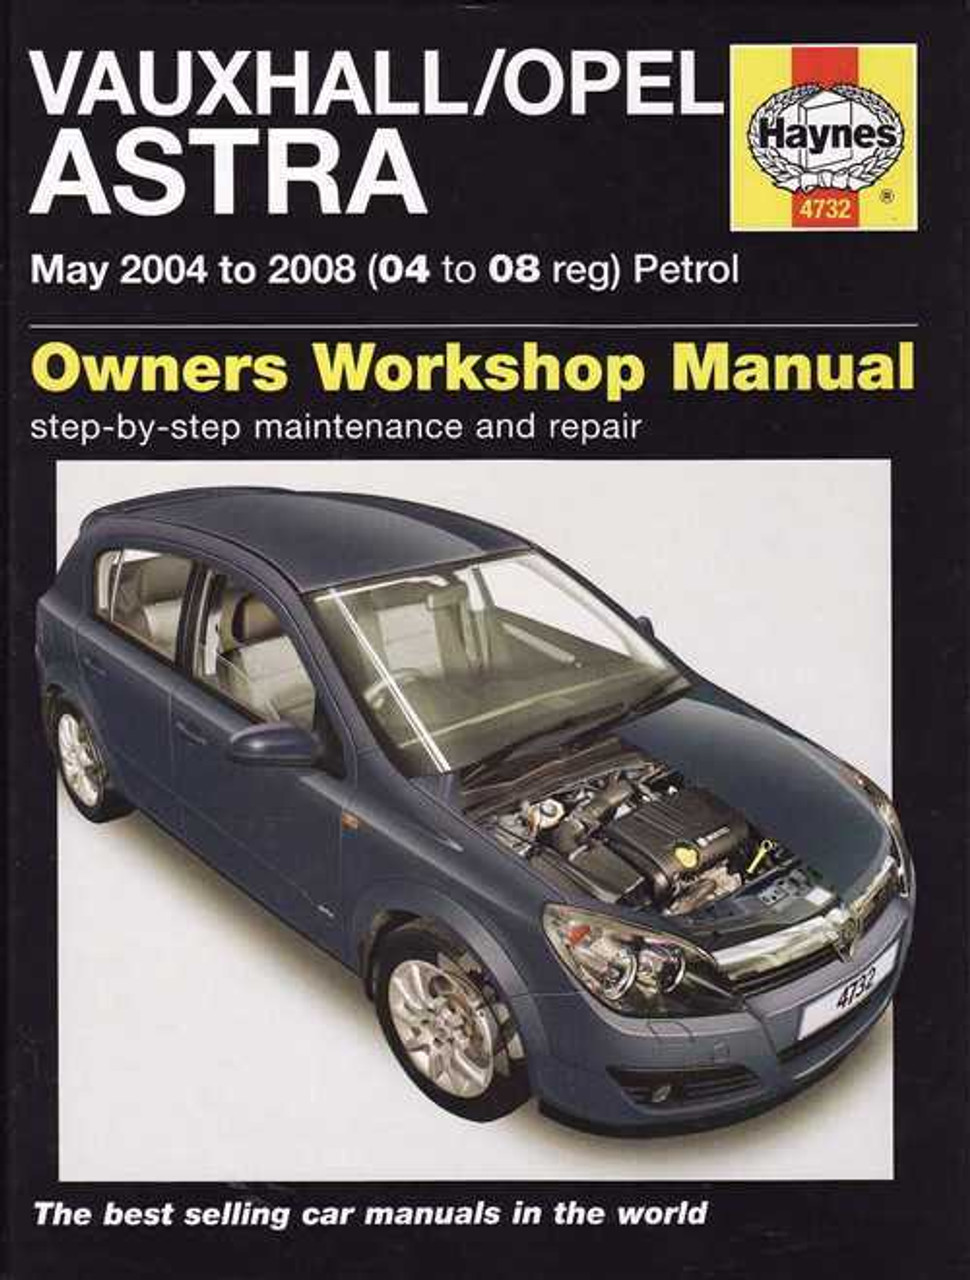 holden astra 2004 2008 petrol workshop manual rh automotobookshop com au opel astra service manual opel zafira repair manual